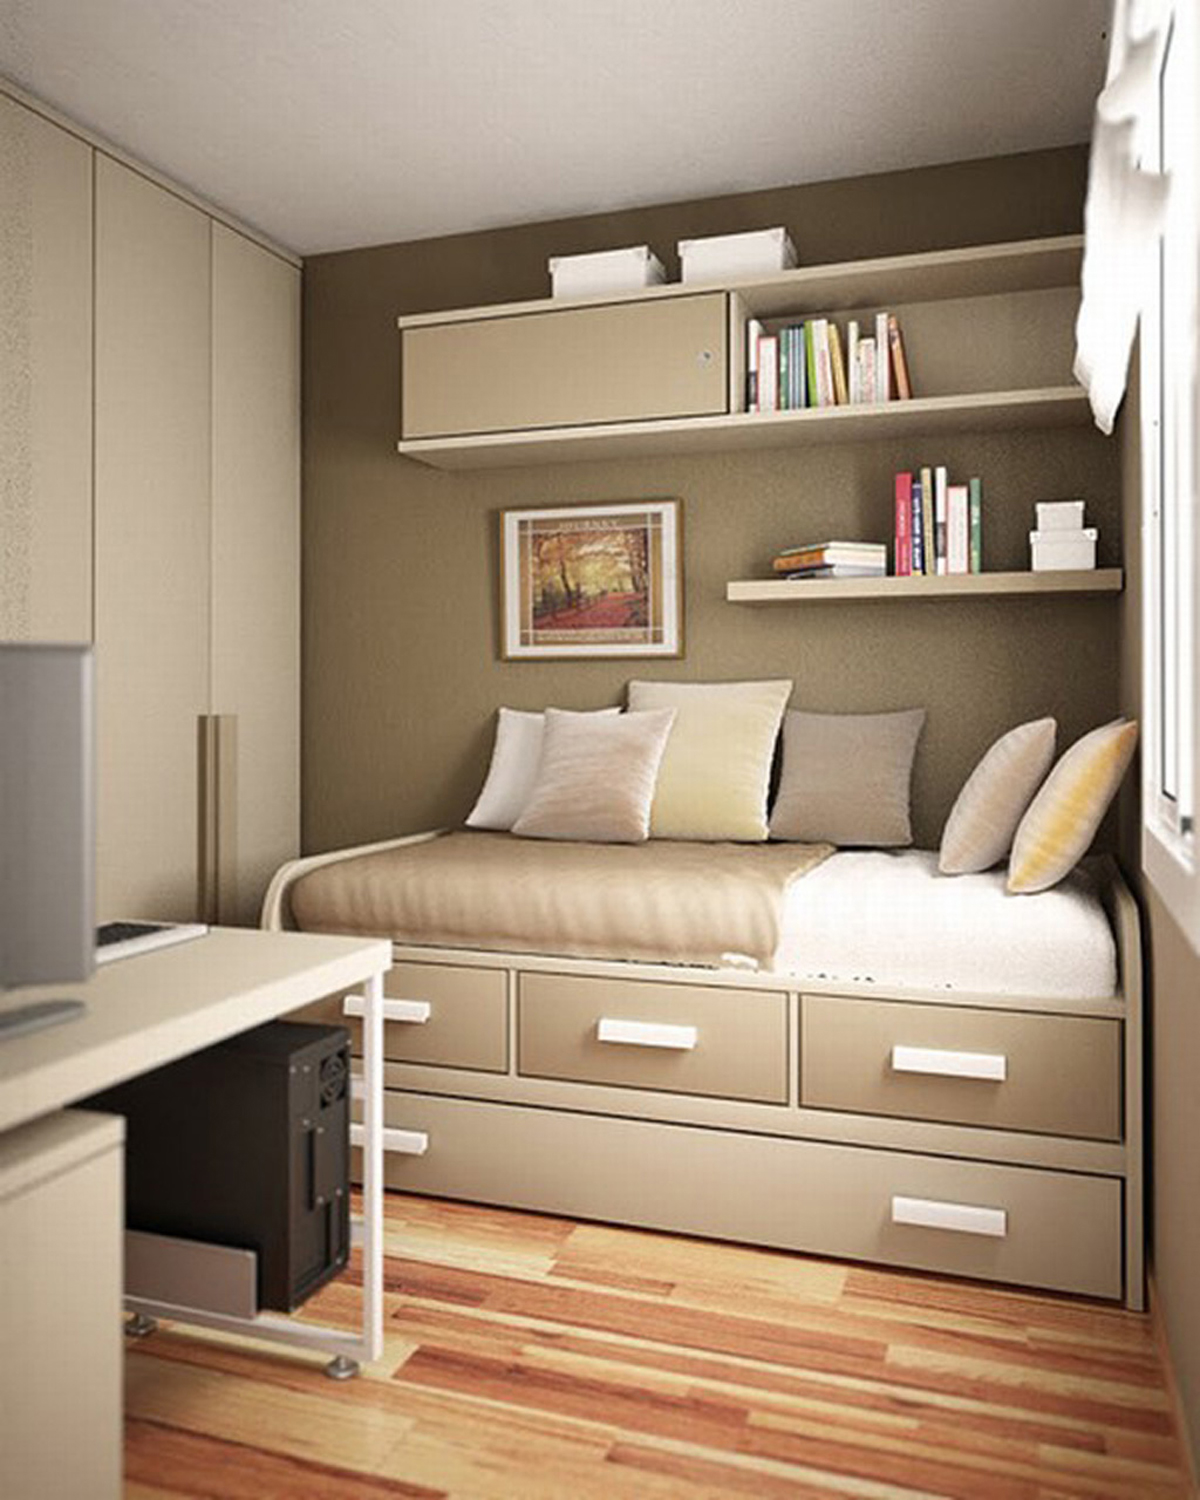 Small Bedroom Decorating Ideas On A Budget Small Room Decorating Ideas